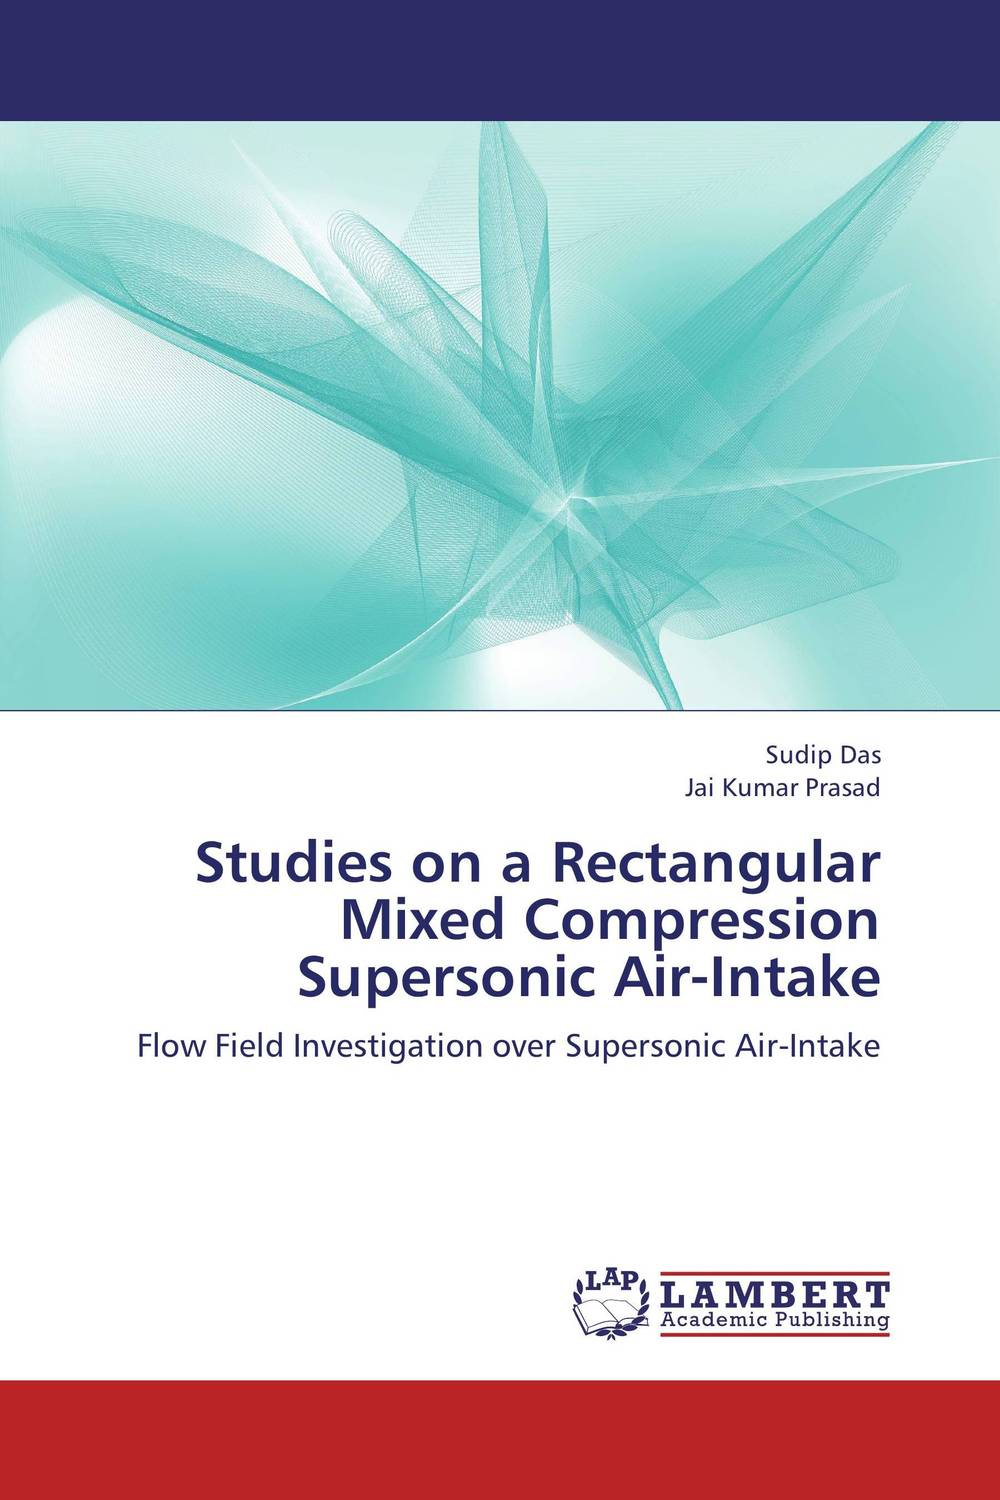 Studies on a Rectangular Mixed Compression Supersonic Air-Intake rakesh kumar amrit pal singh and sangeeta obrai computational and solution studies of cu ii ions with podands